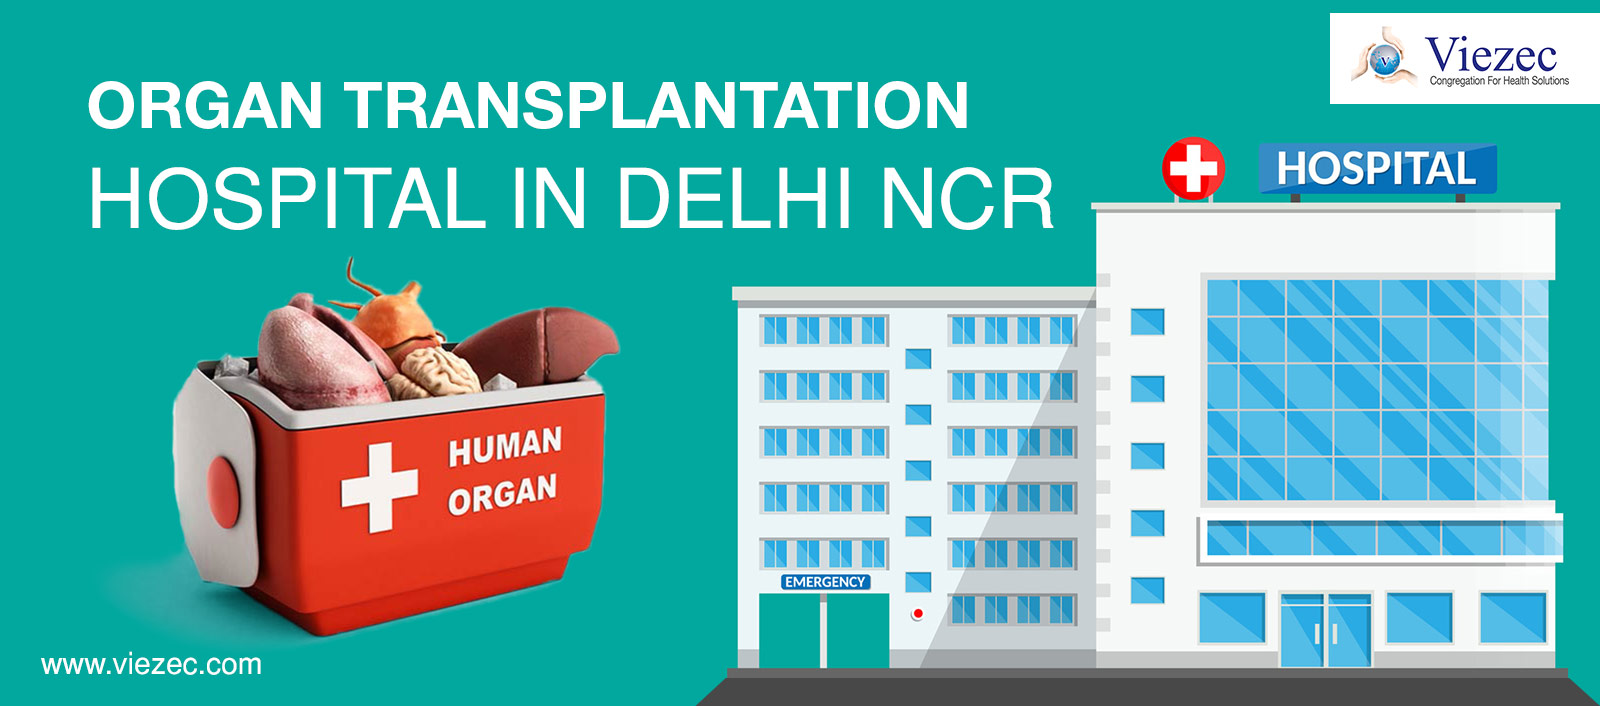 Organ Transplantation In Hospital Delhi NCR